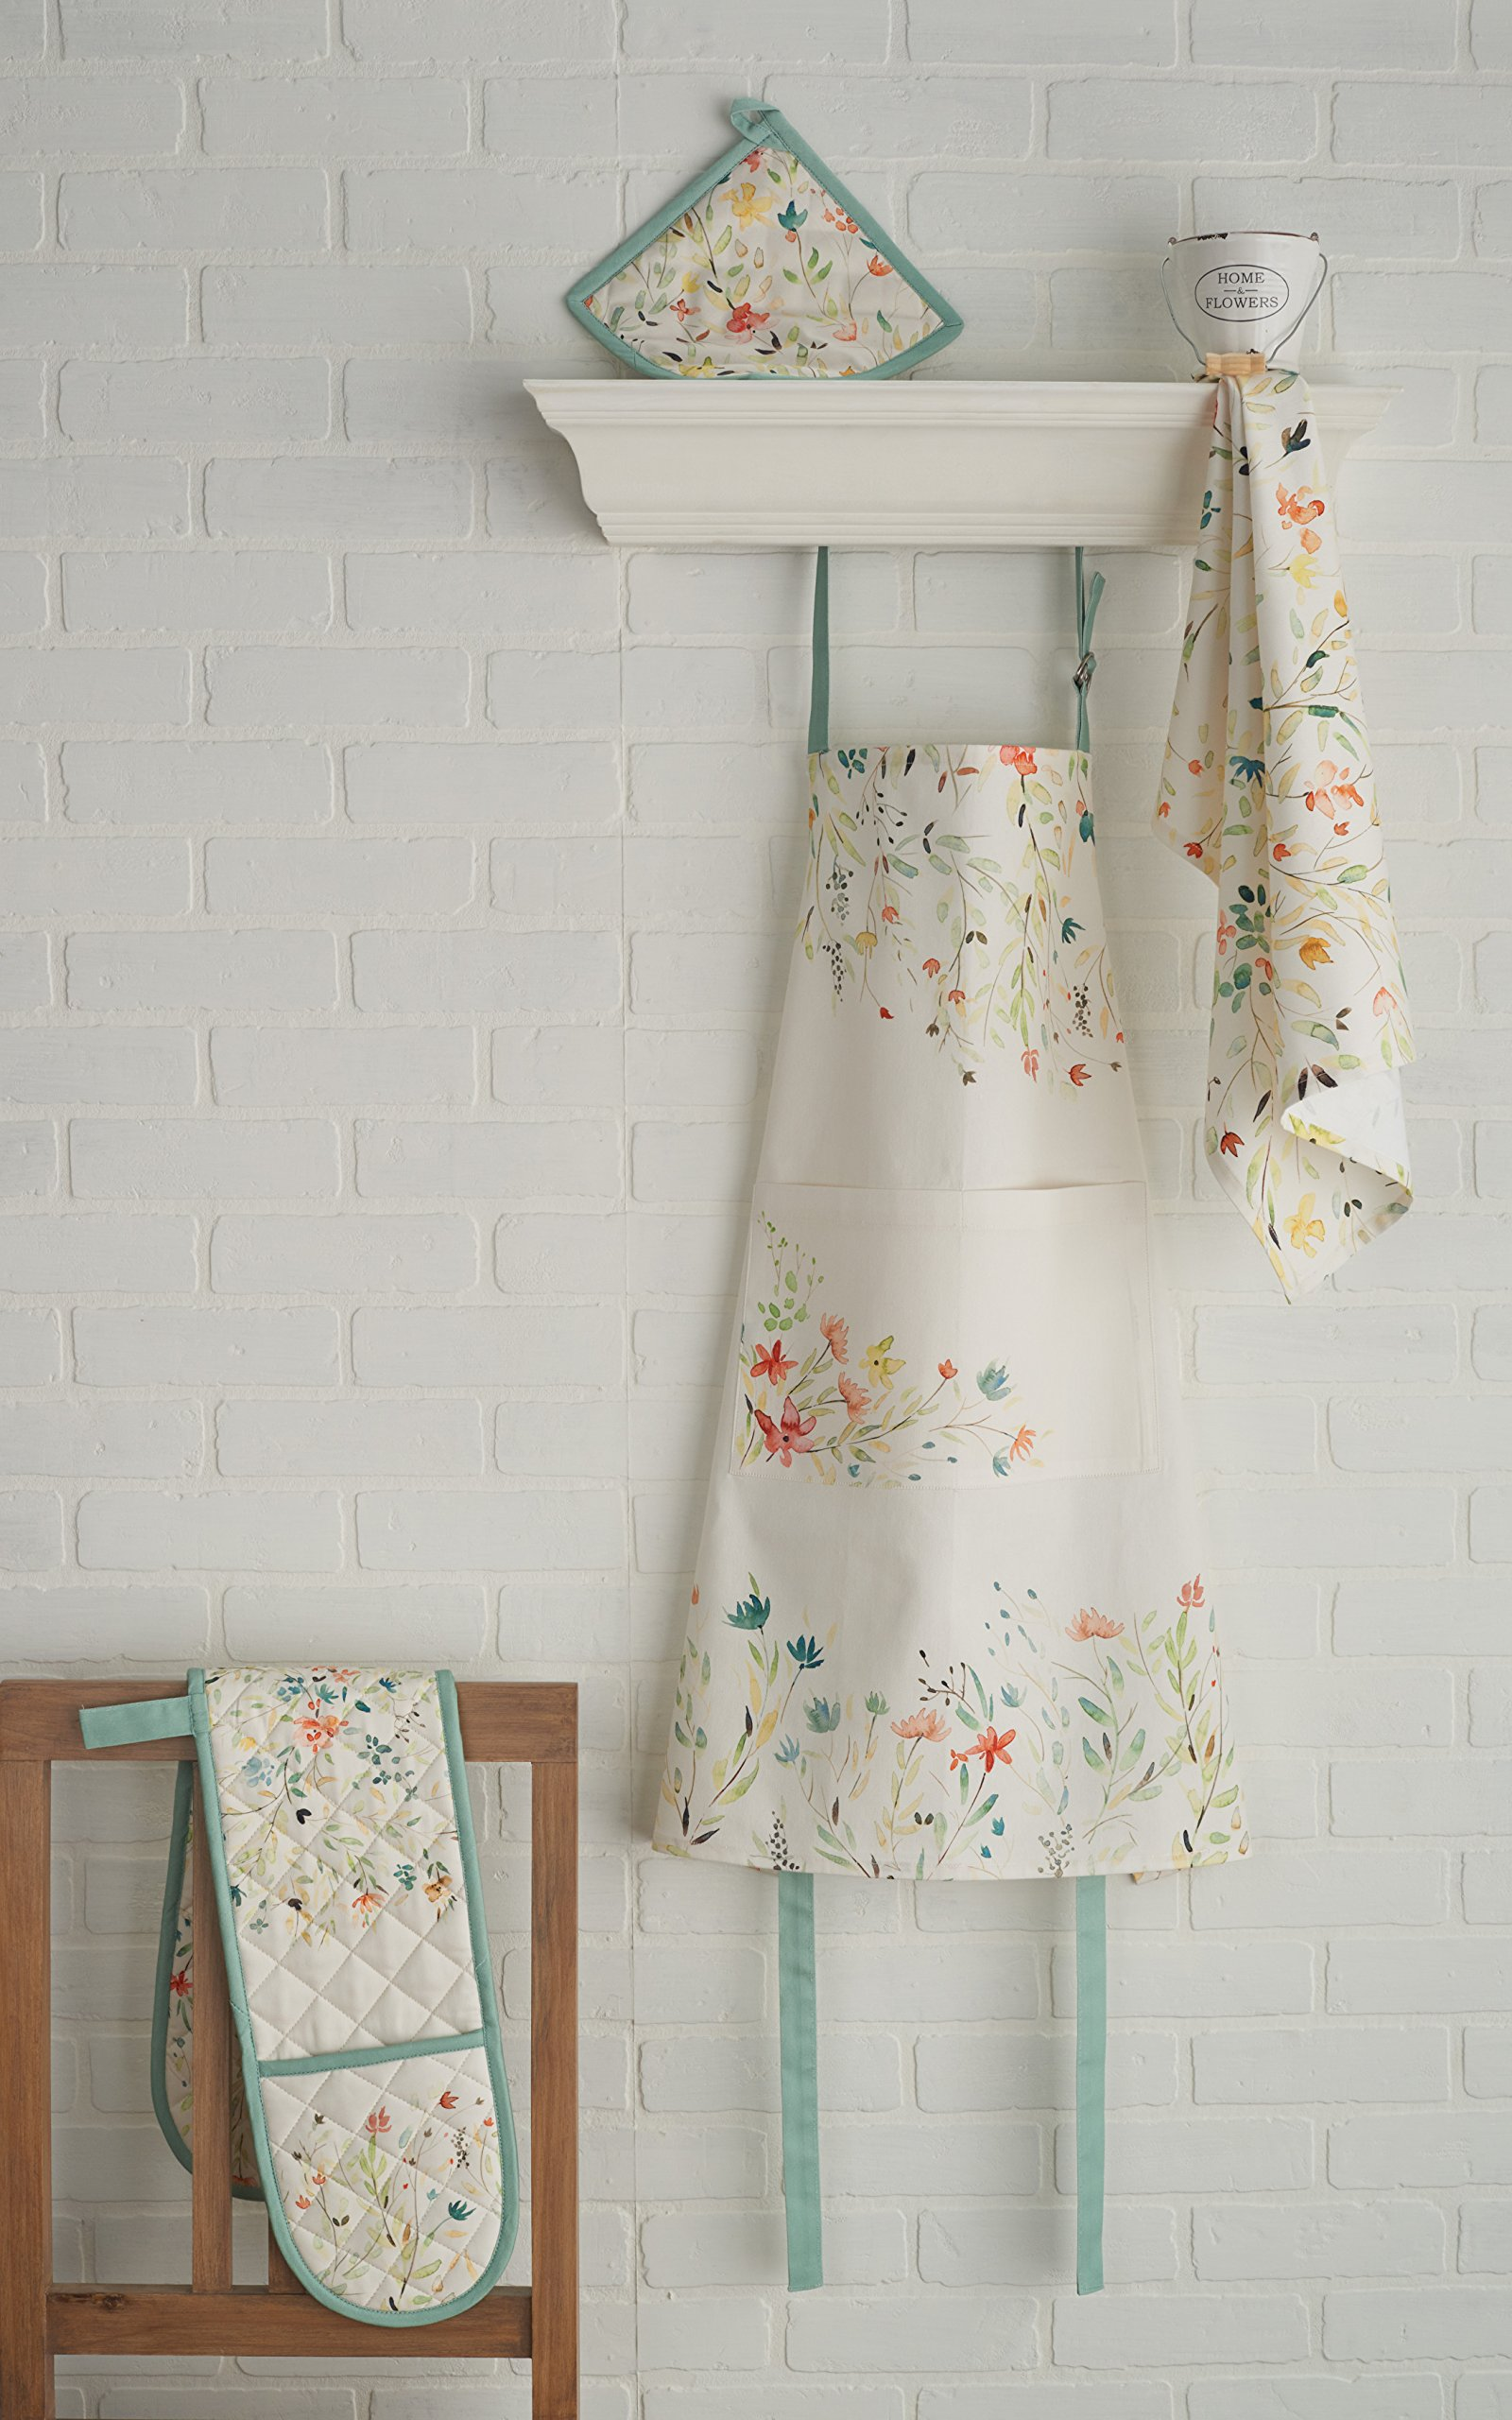 Maison d' Hermine Colmar 100% Cotton Apron with an adjustable neck & visible center pocket , 27.50 - inch by 31.50 - inch by Maison d' Hermine (Image #3)